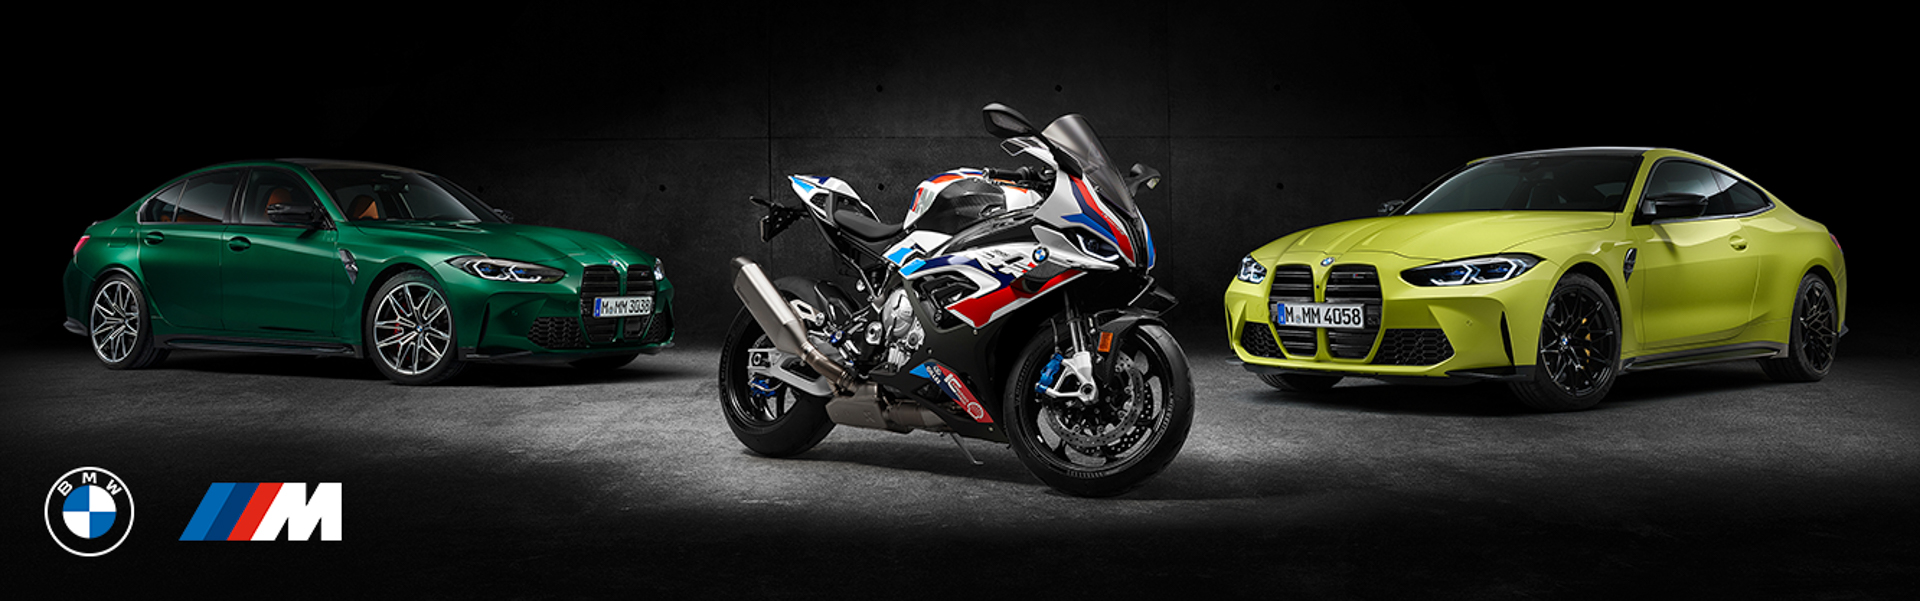 Experience JOY at RSA Motors Libis; special deals on BMW accessories, riding gear, equipment and Lifestyle Merch